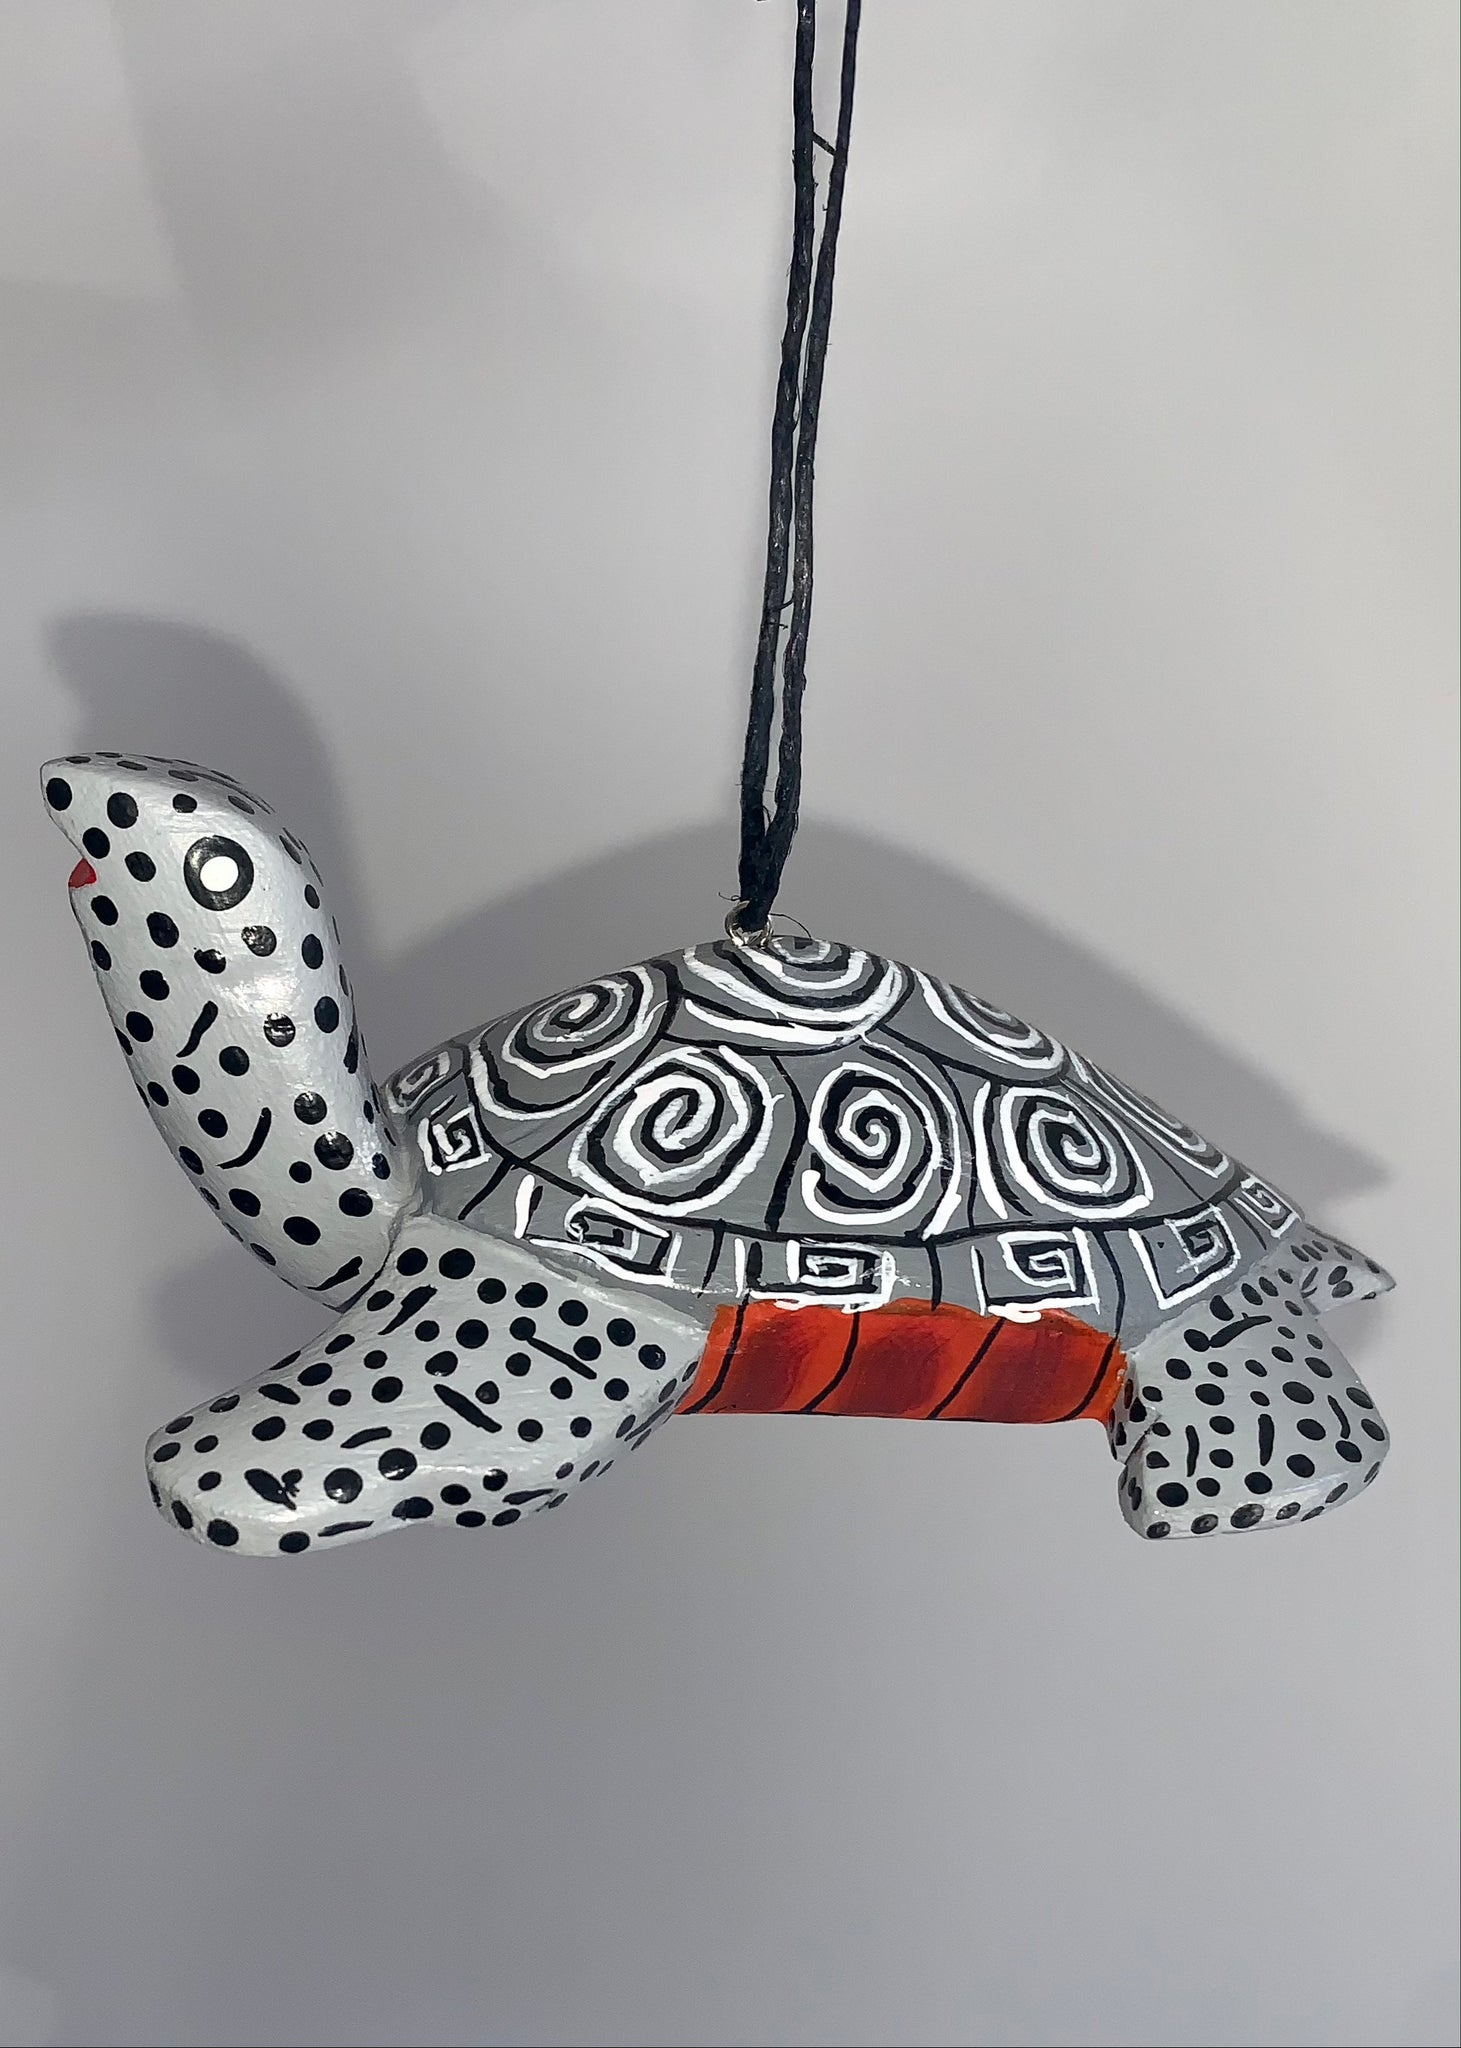 Women of the Cloud Forest - Diamondback Terrapin Turtle Ornament